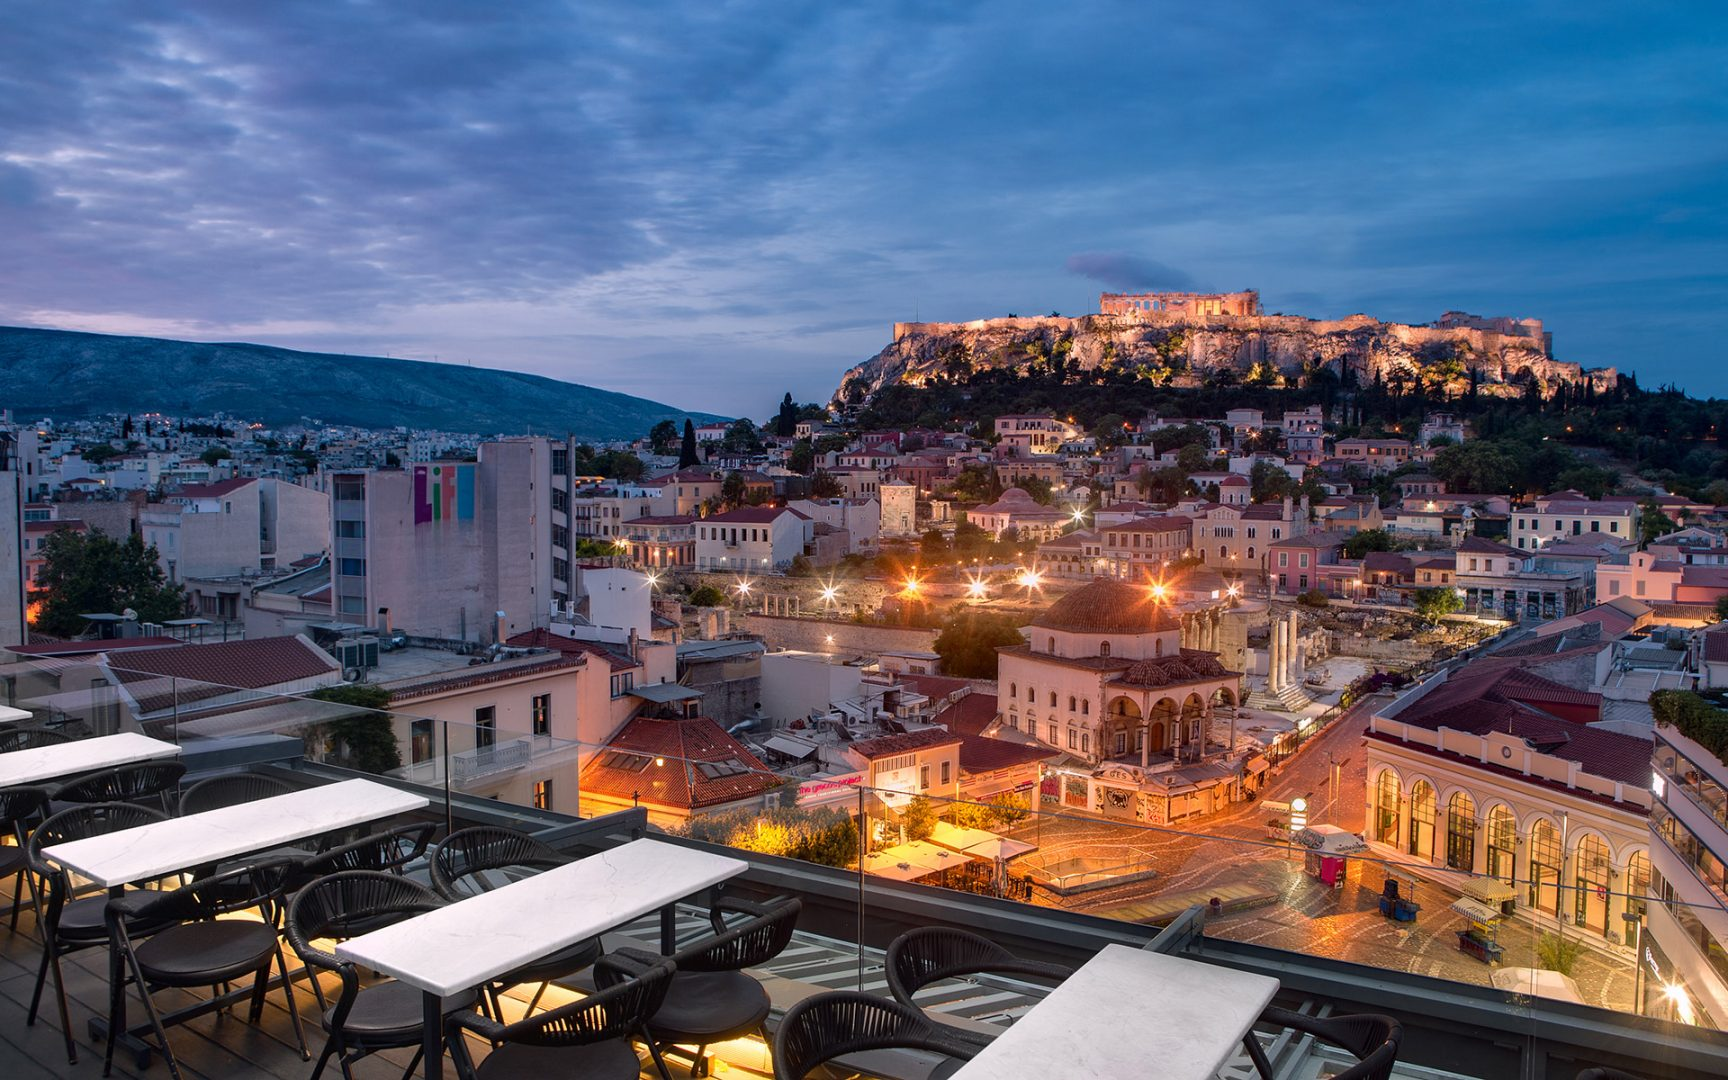 Α rooftop bar with a stunning view of the Acropolis